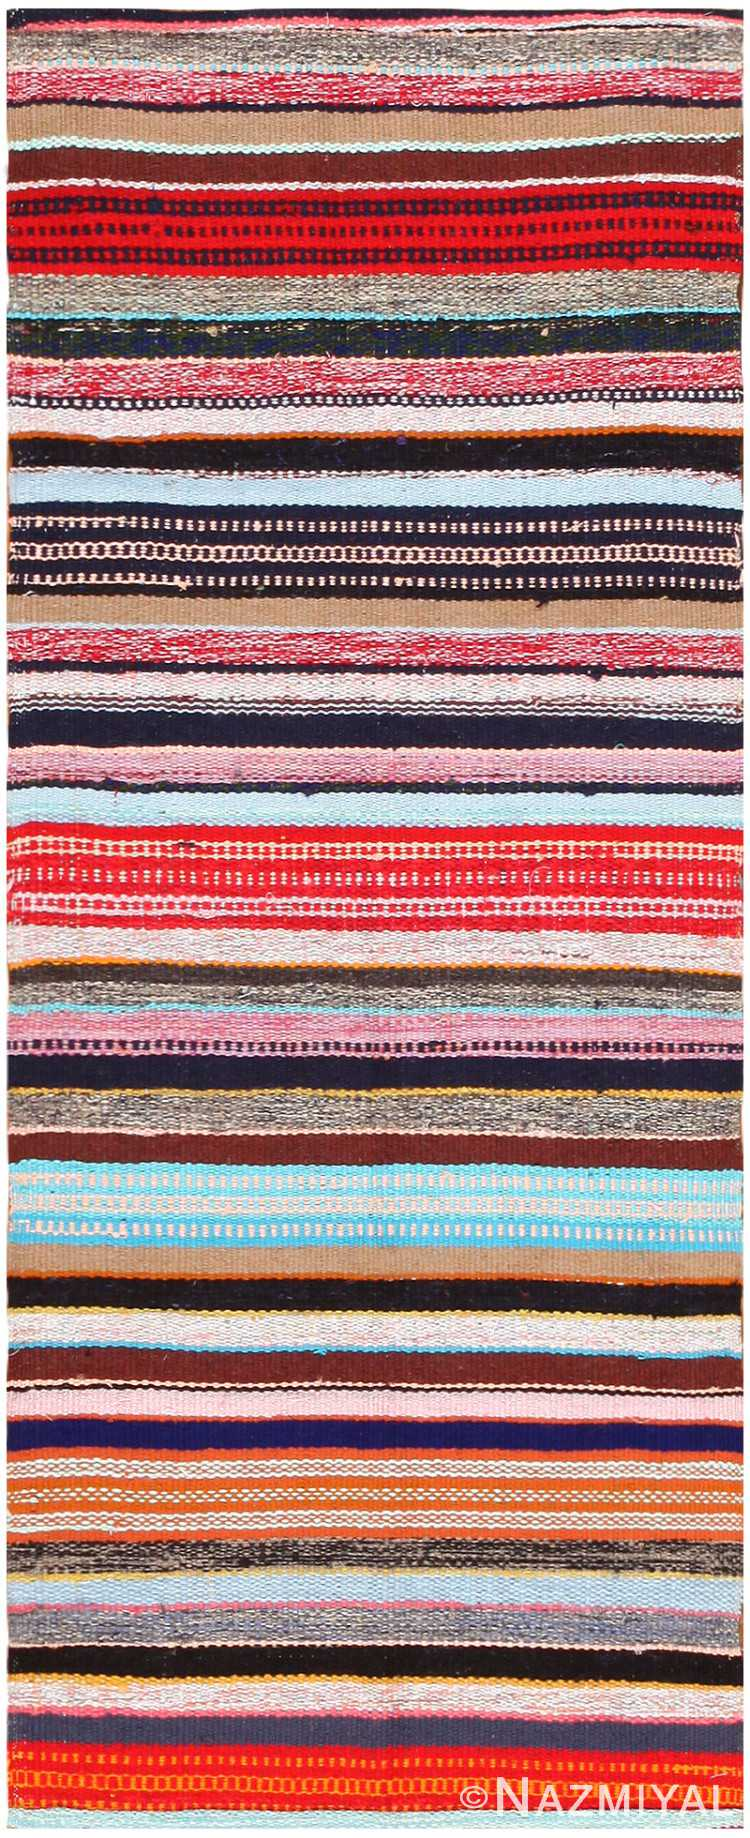 Vintage Swedish Rag Rug 46667 Detail/Large View